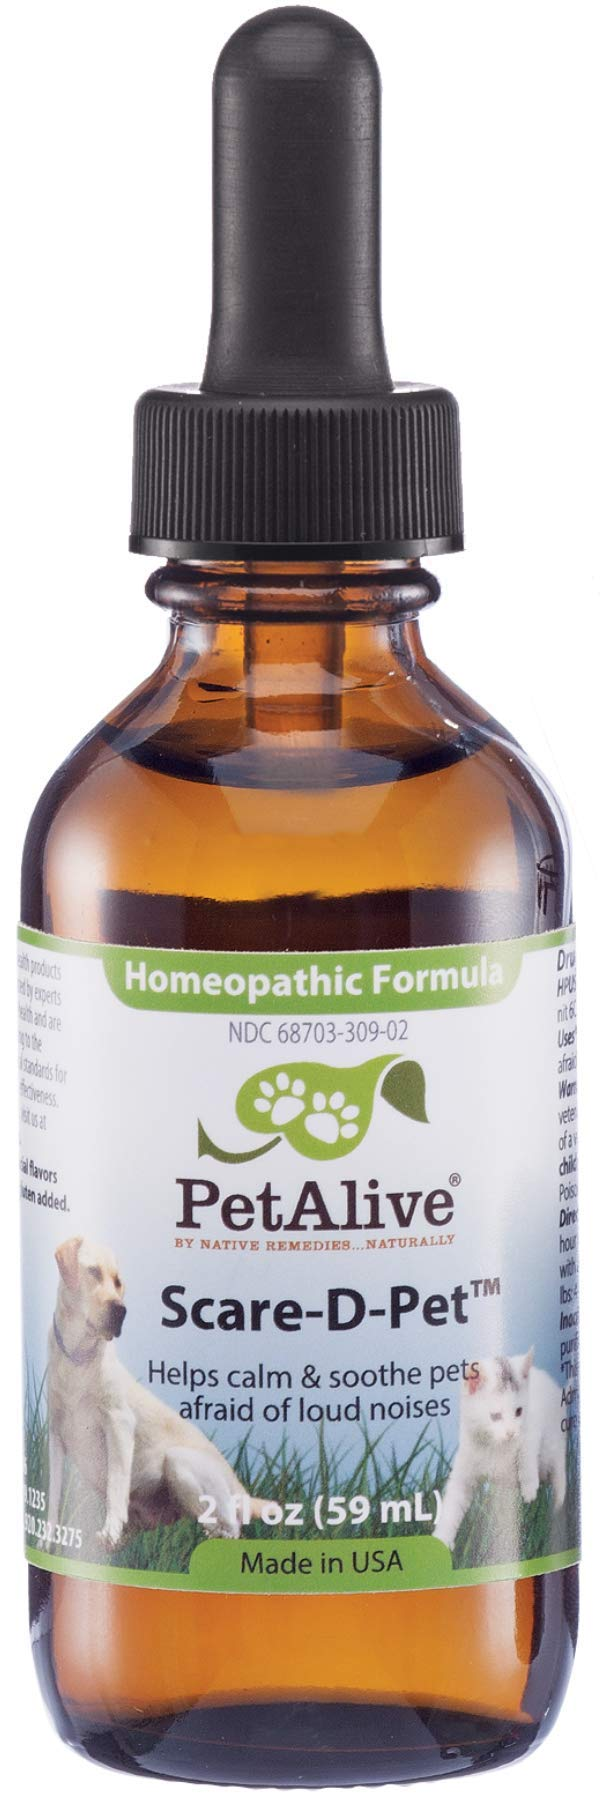 PetAlive Scare-D-Pet for Fear of Loud Noises in Dogs & Cats, 59 mL by PetAlive